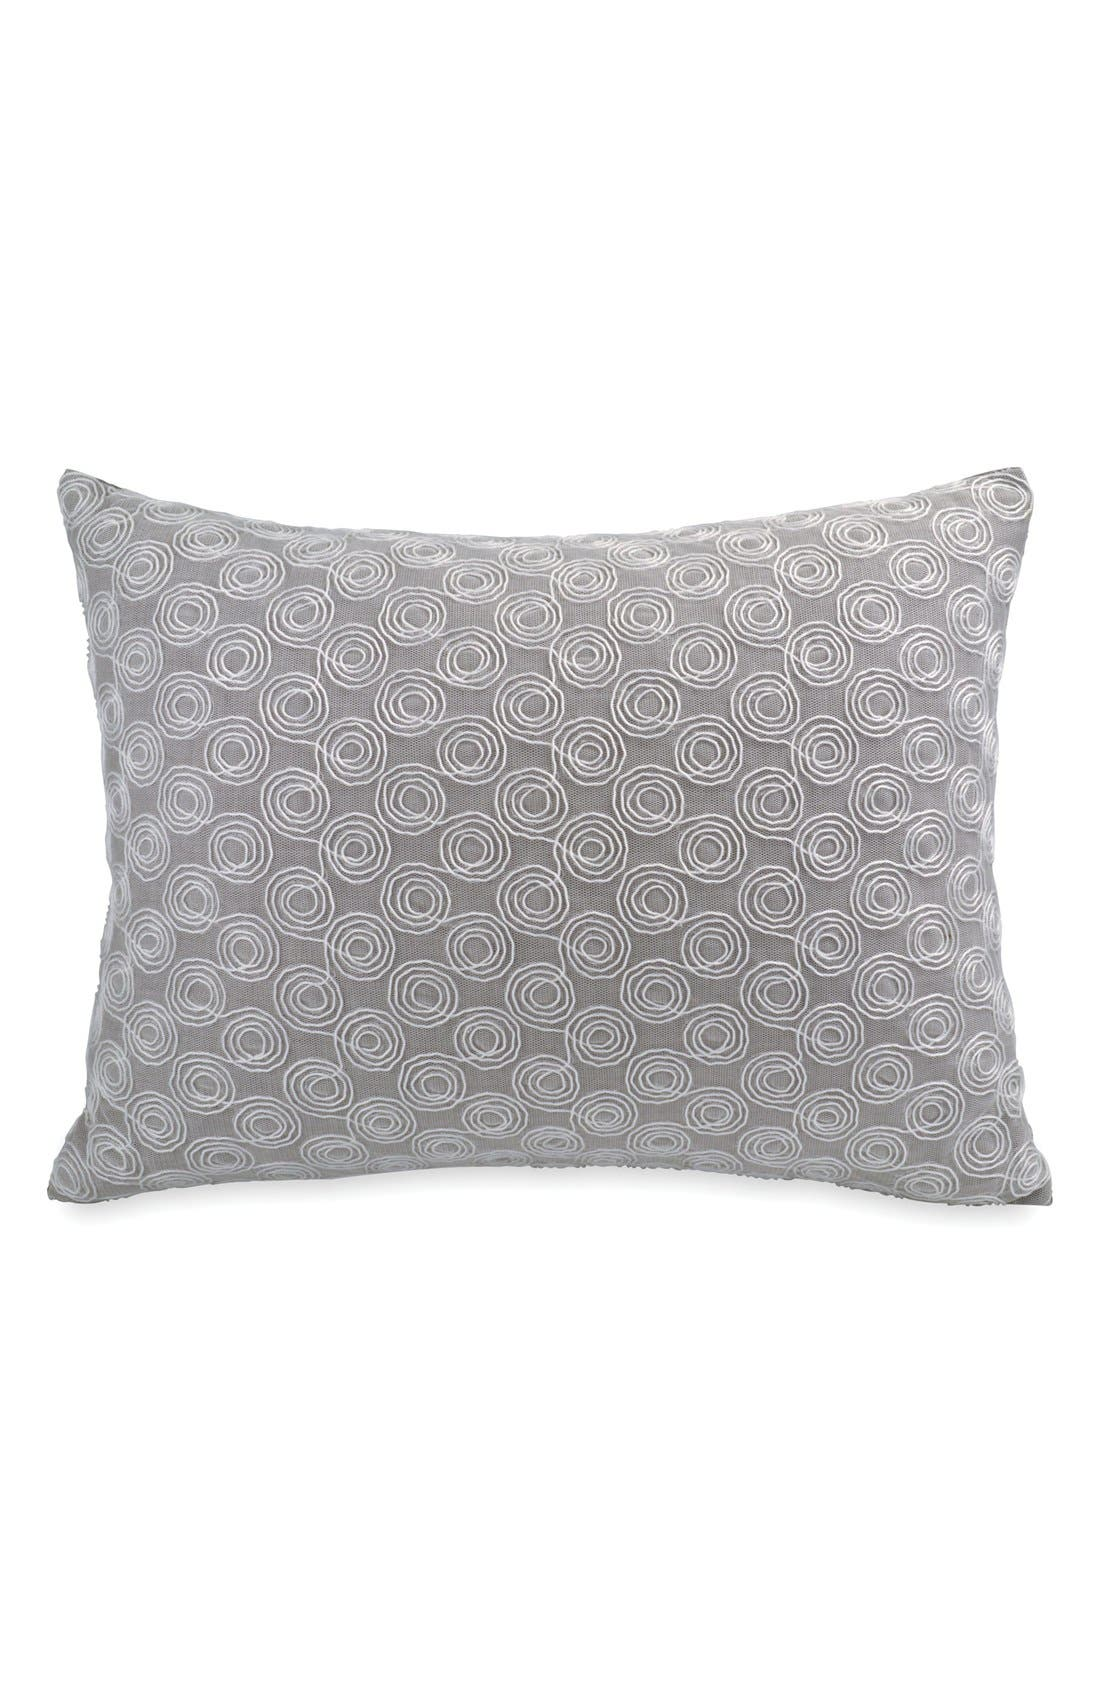 DKNY 'Loft Stripe' Embroidered Pillow